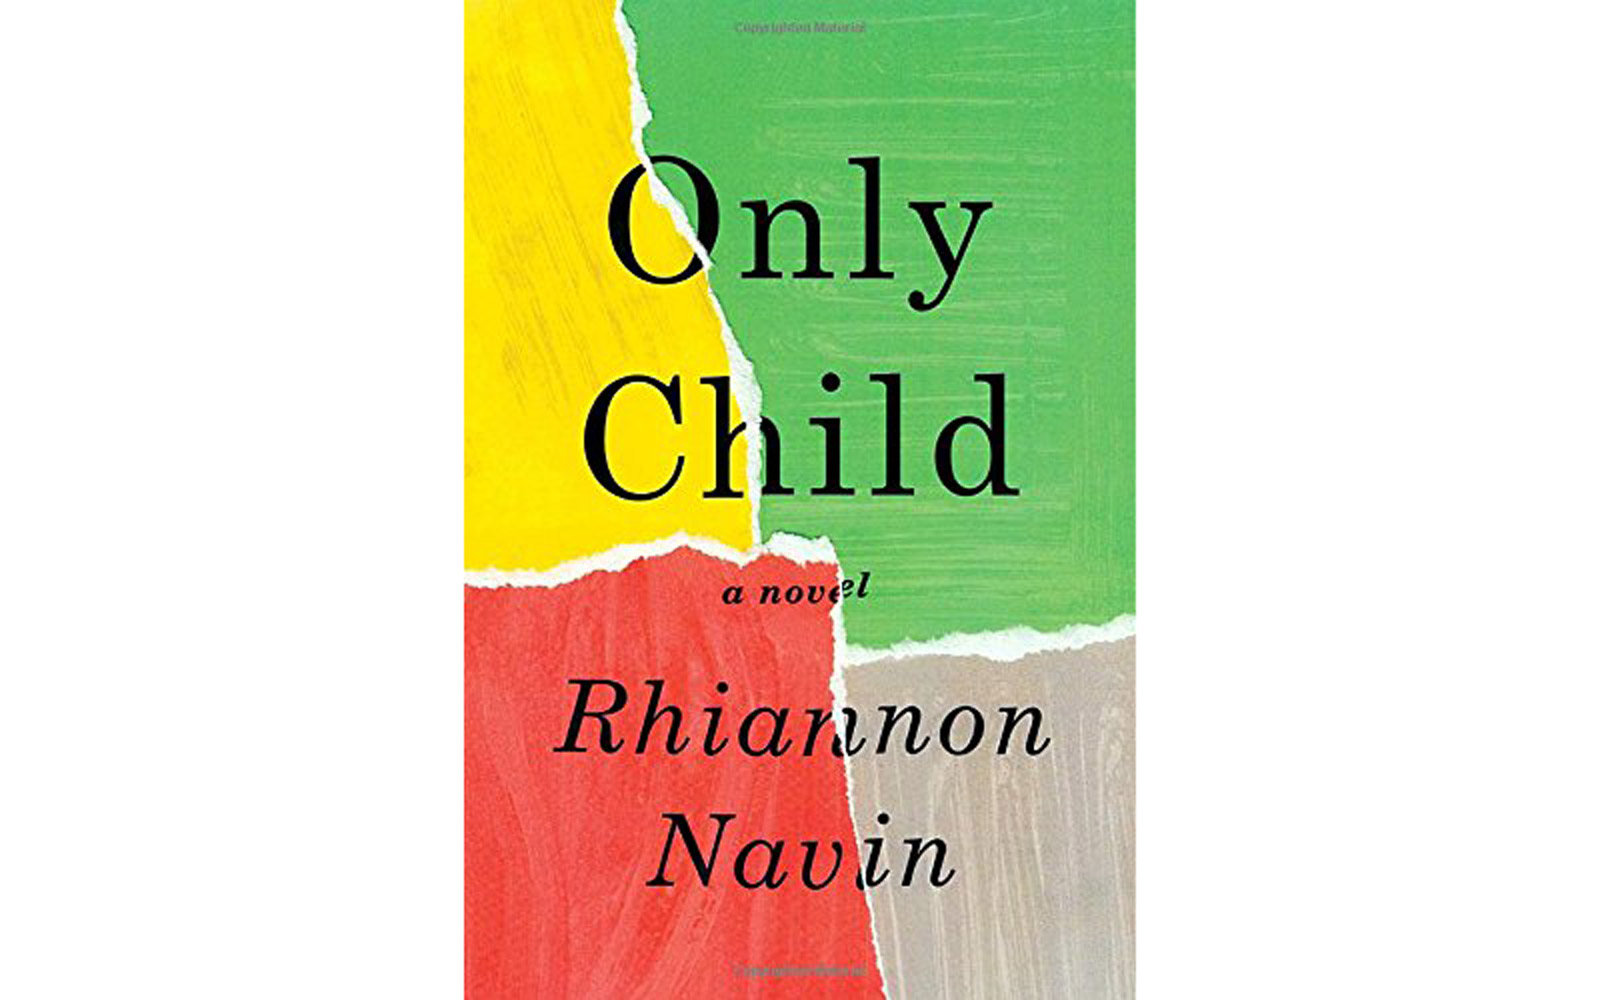 'Only Child' by Rhiannon Navin